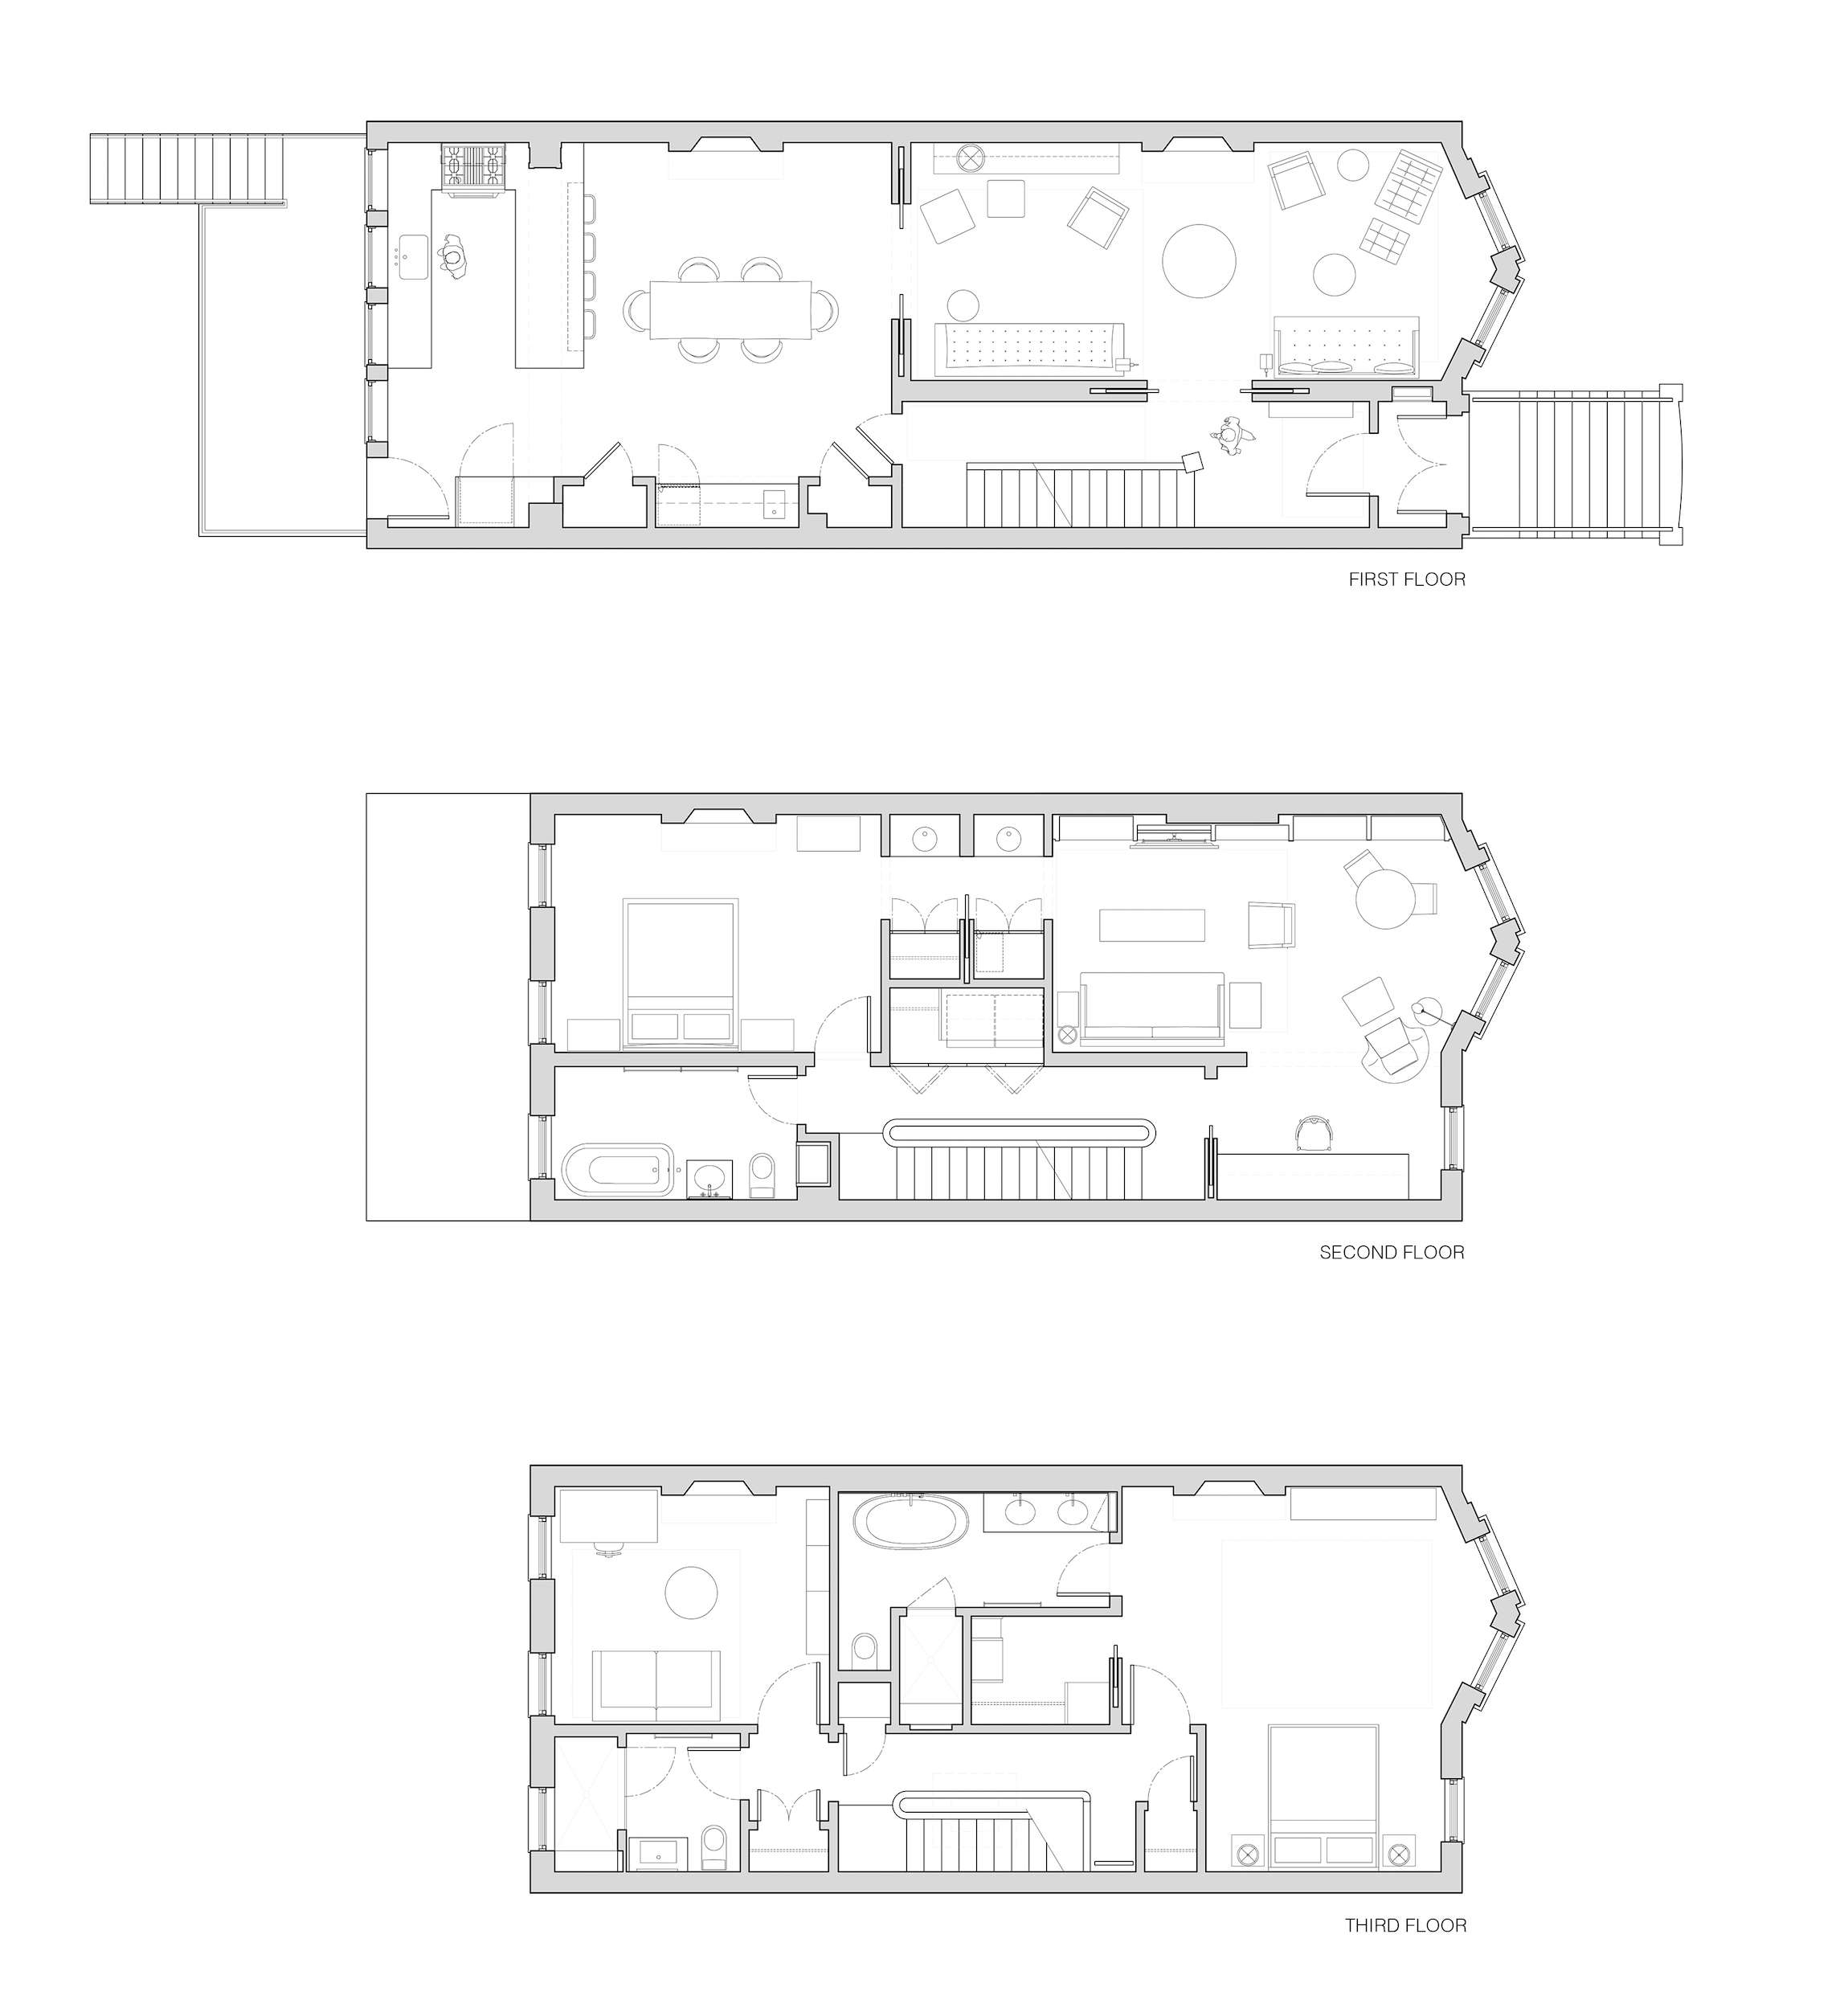 brooklyn prospect heights townhouse floor plans by bangia agostinho architectur 23